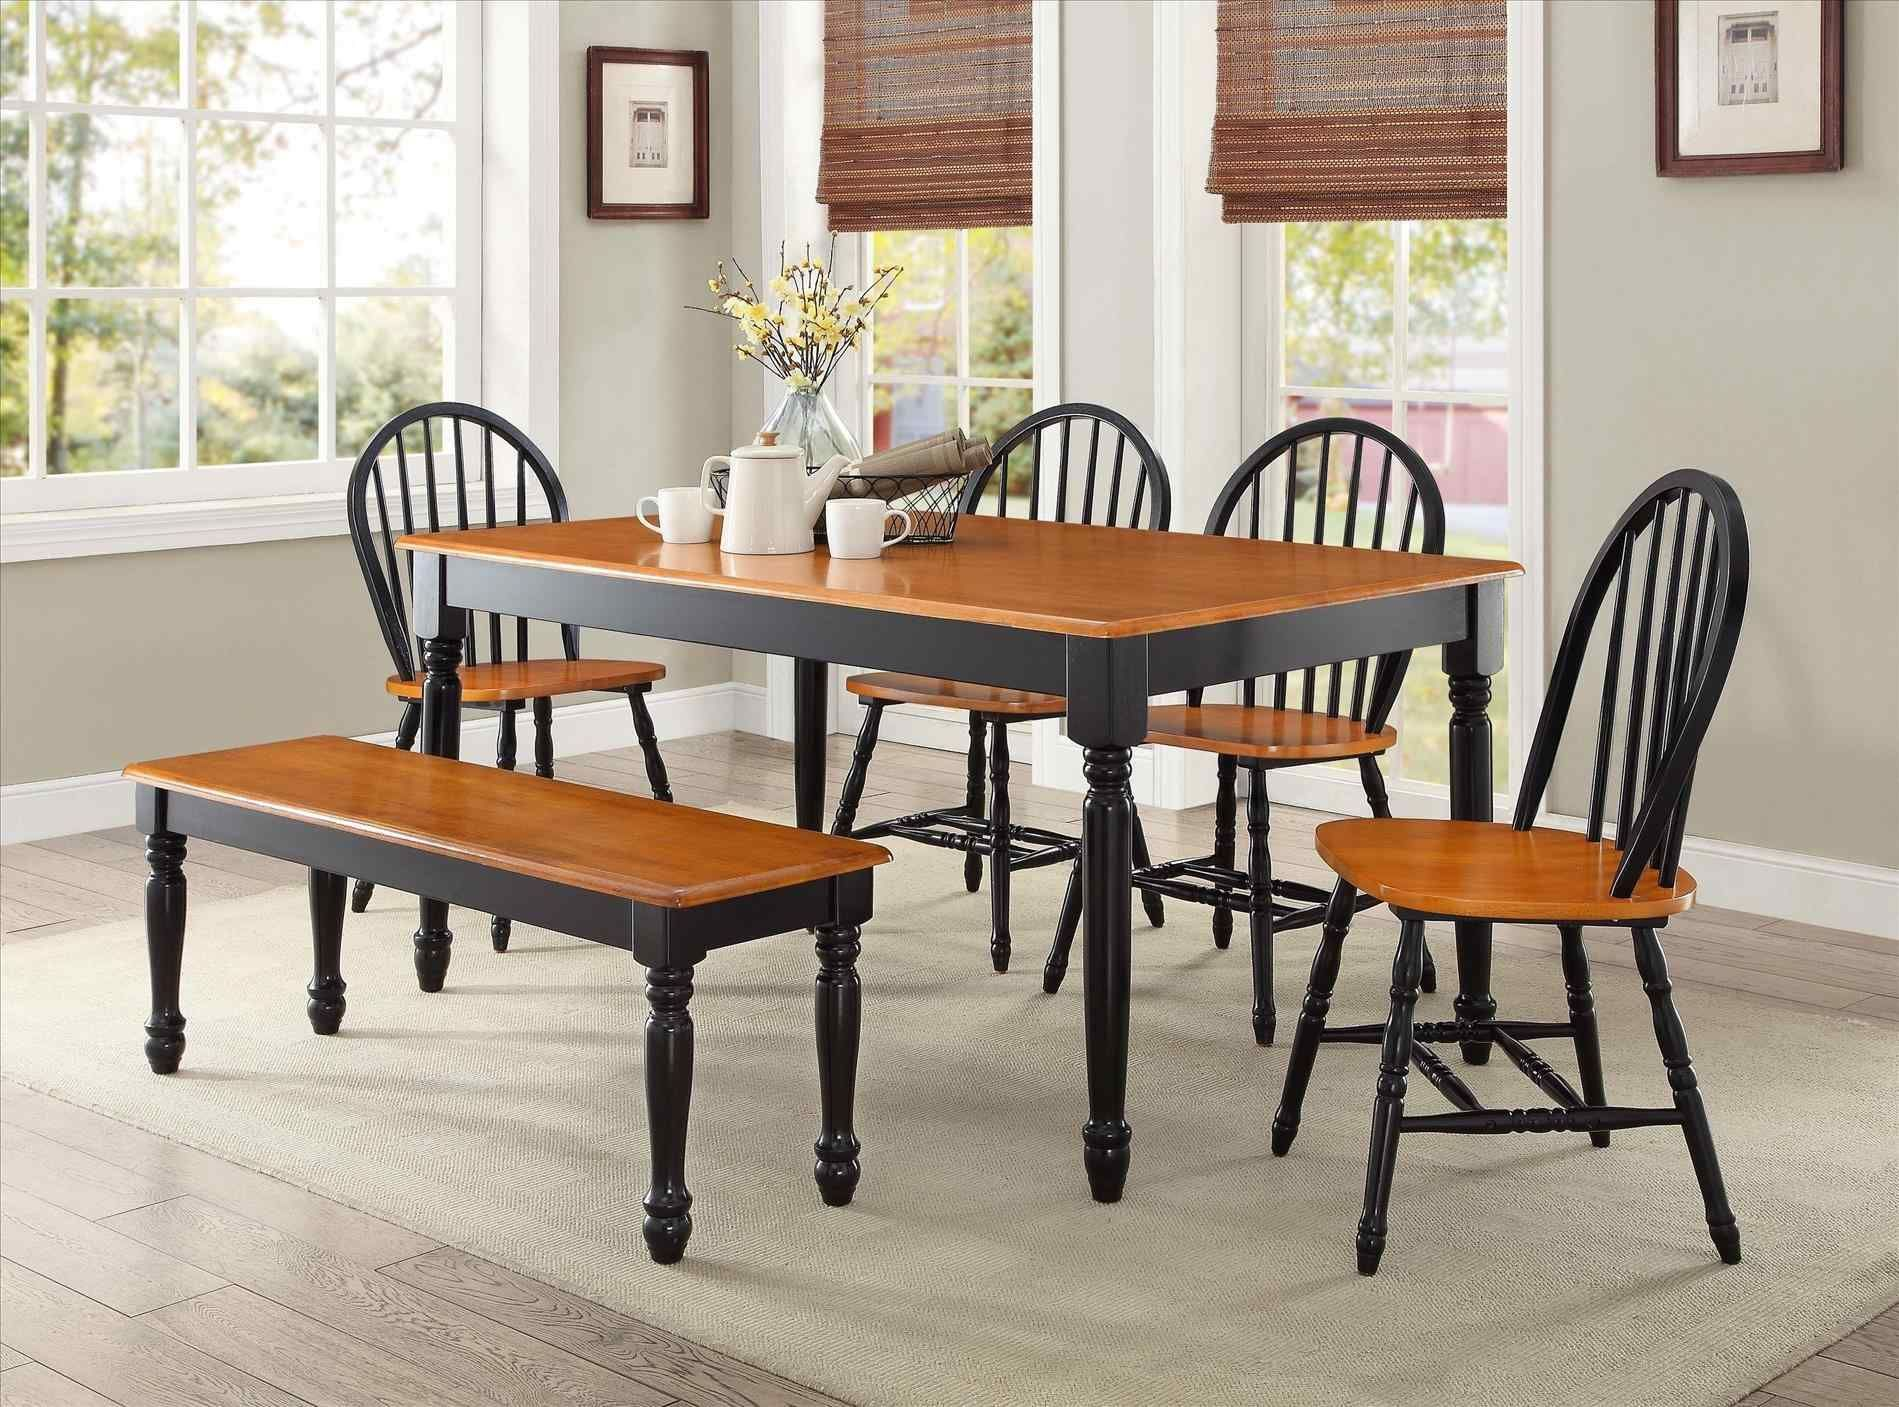 15 Amazing And Unique Dining Table With Bench Seating Dining